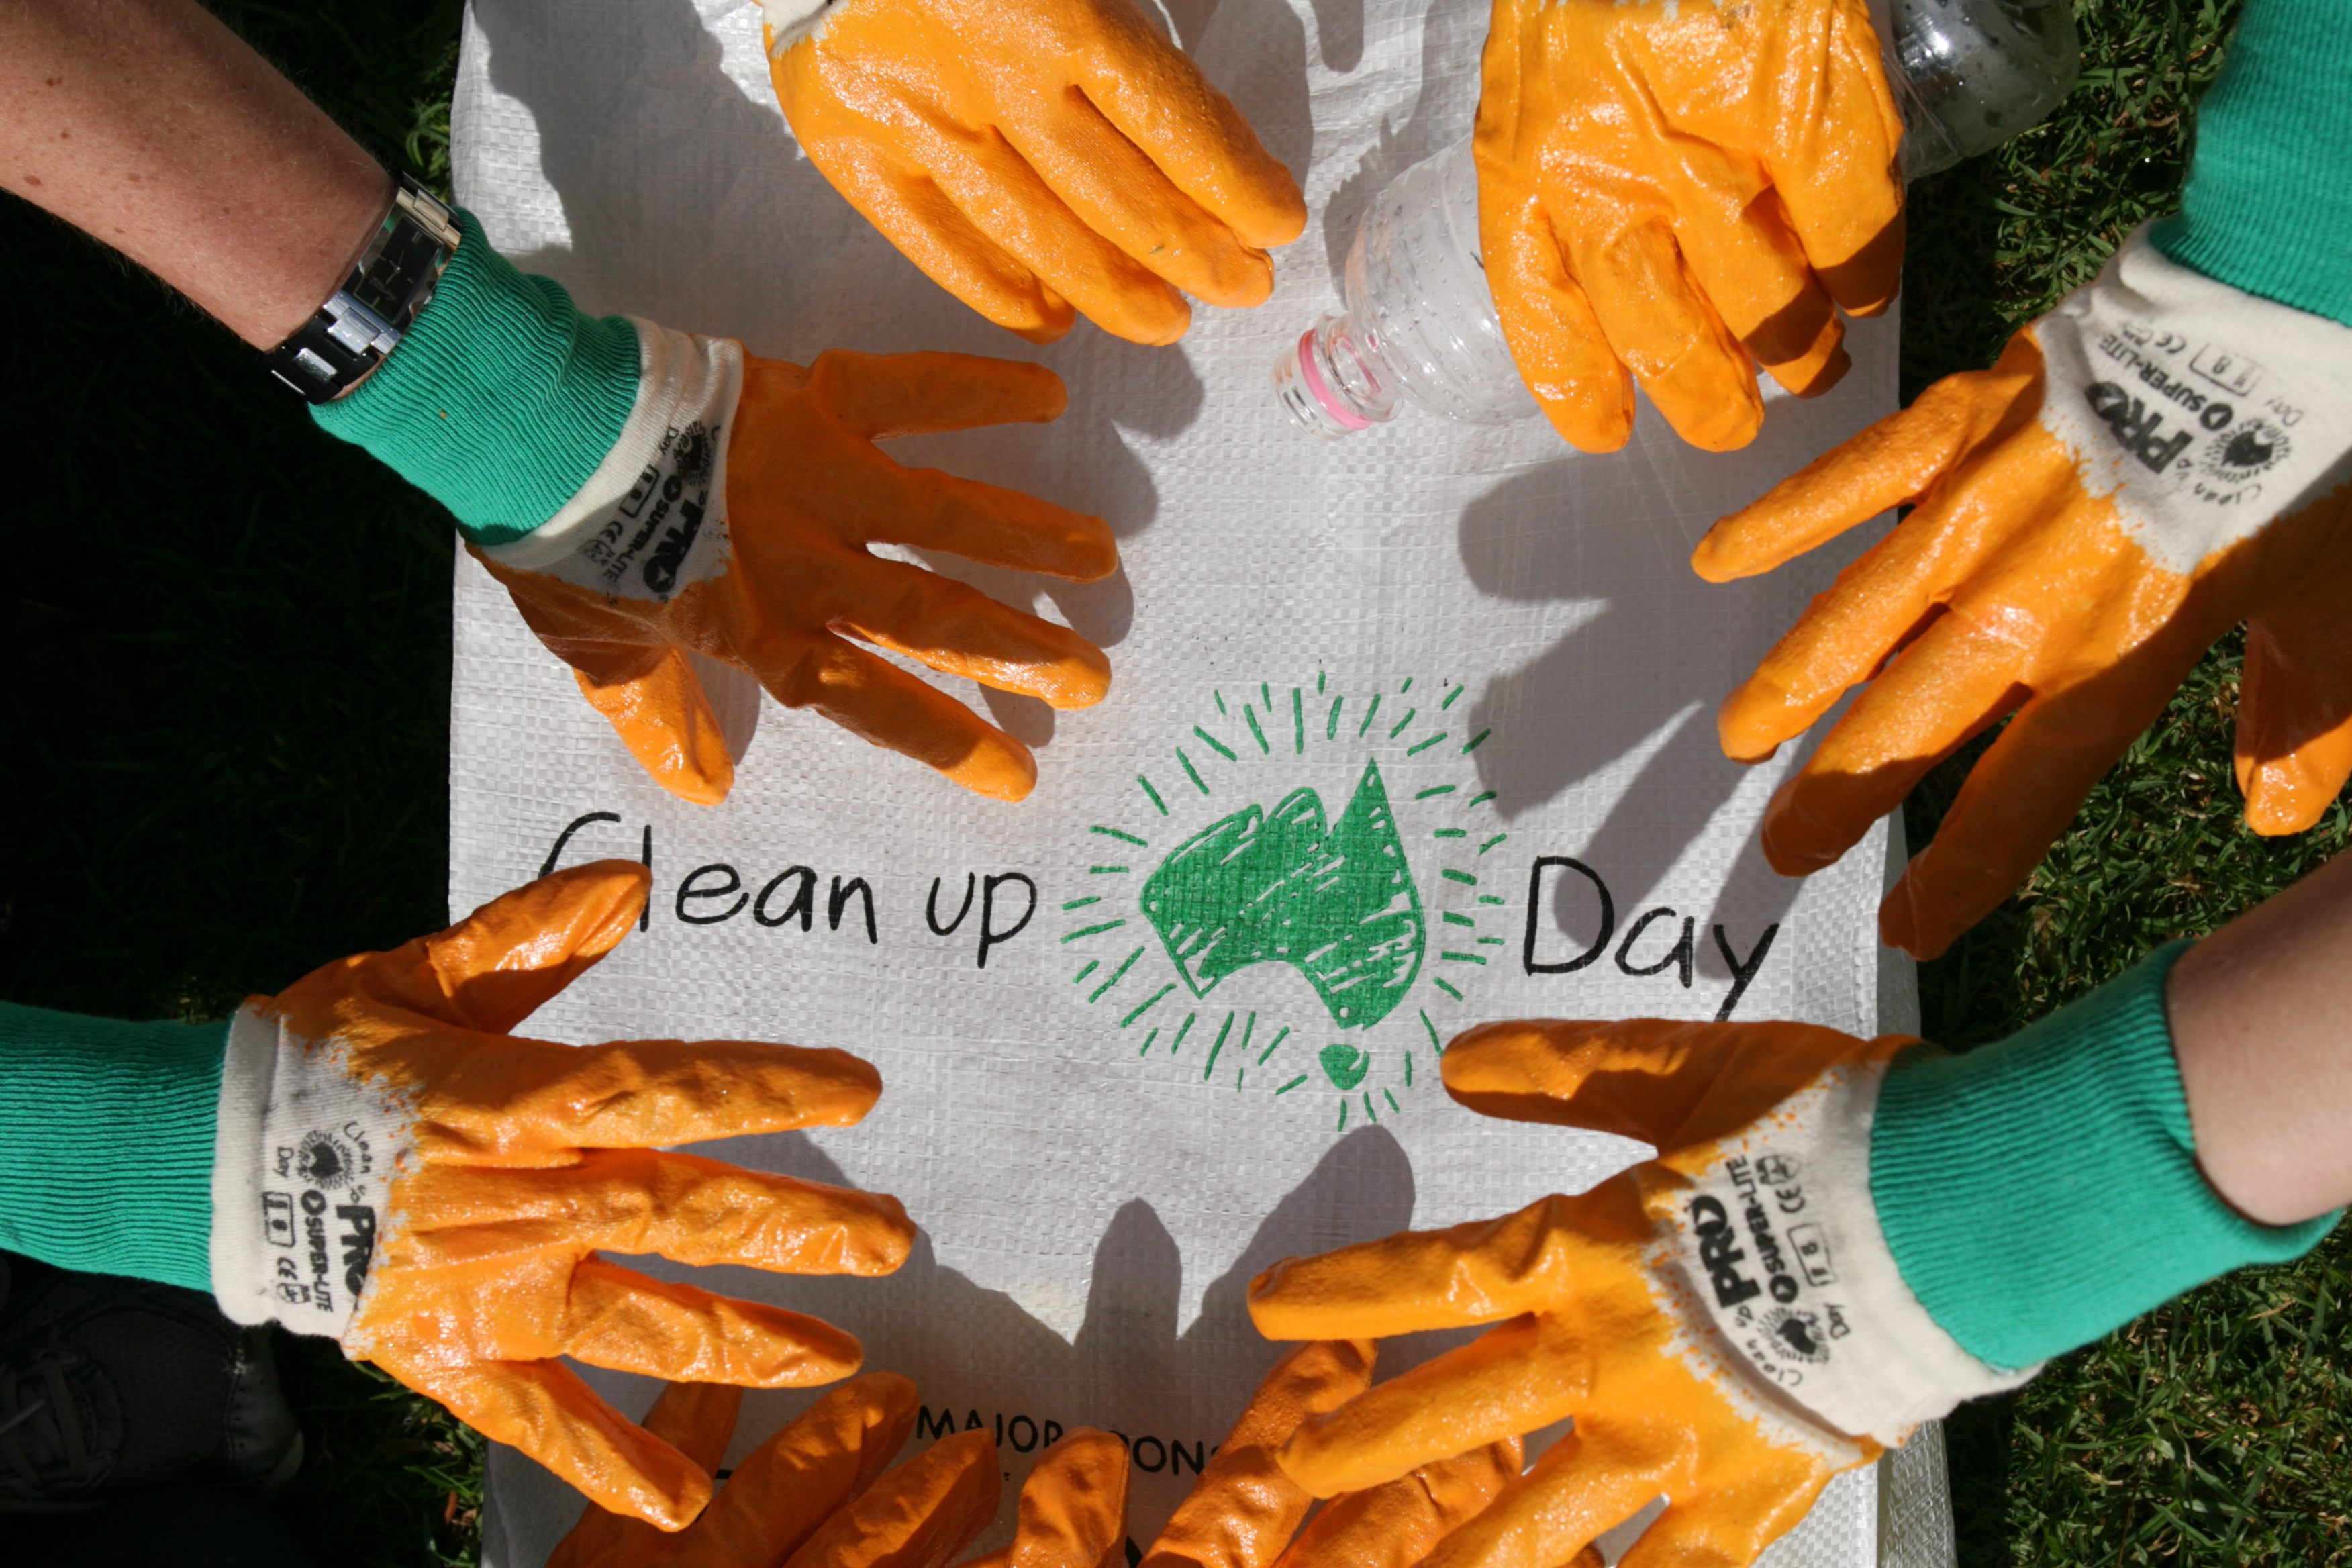 Lend a hand to clean up.